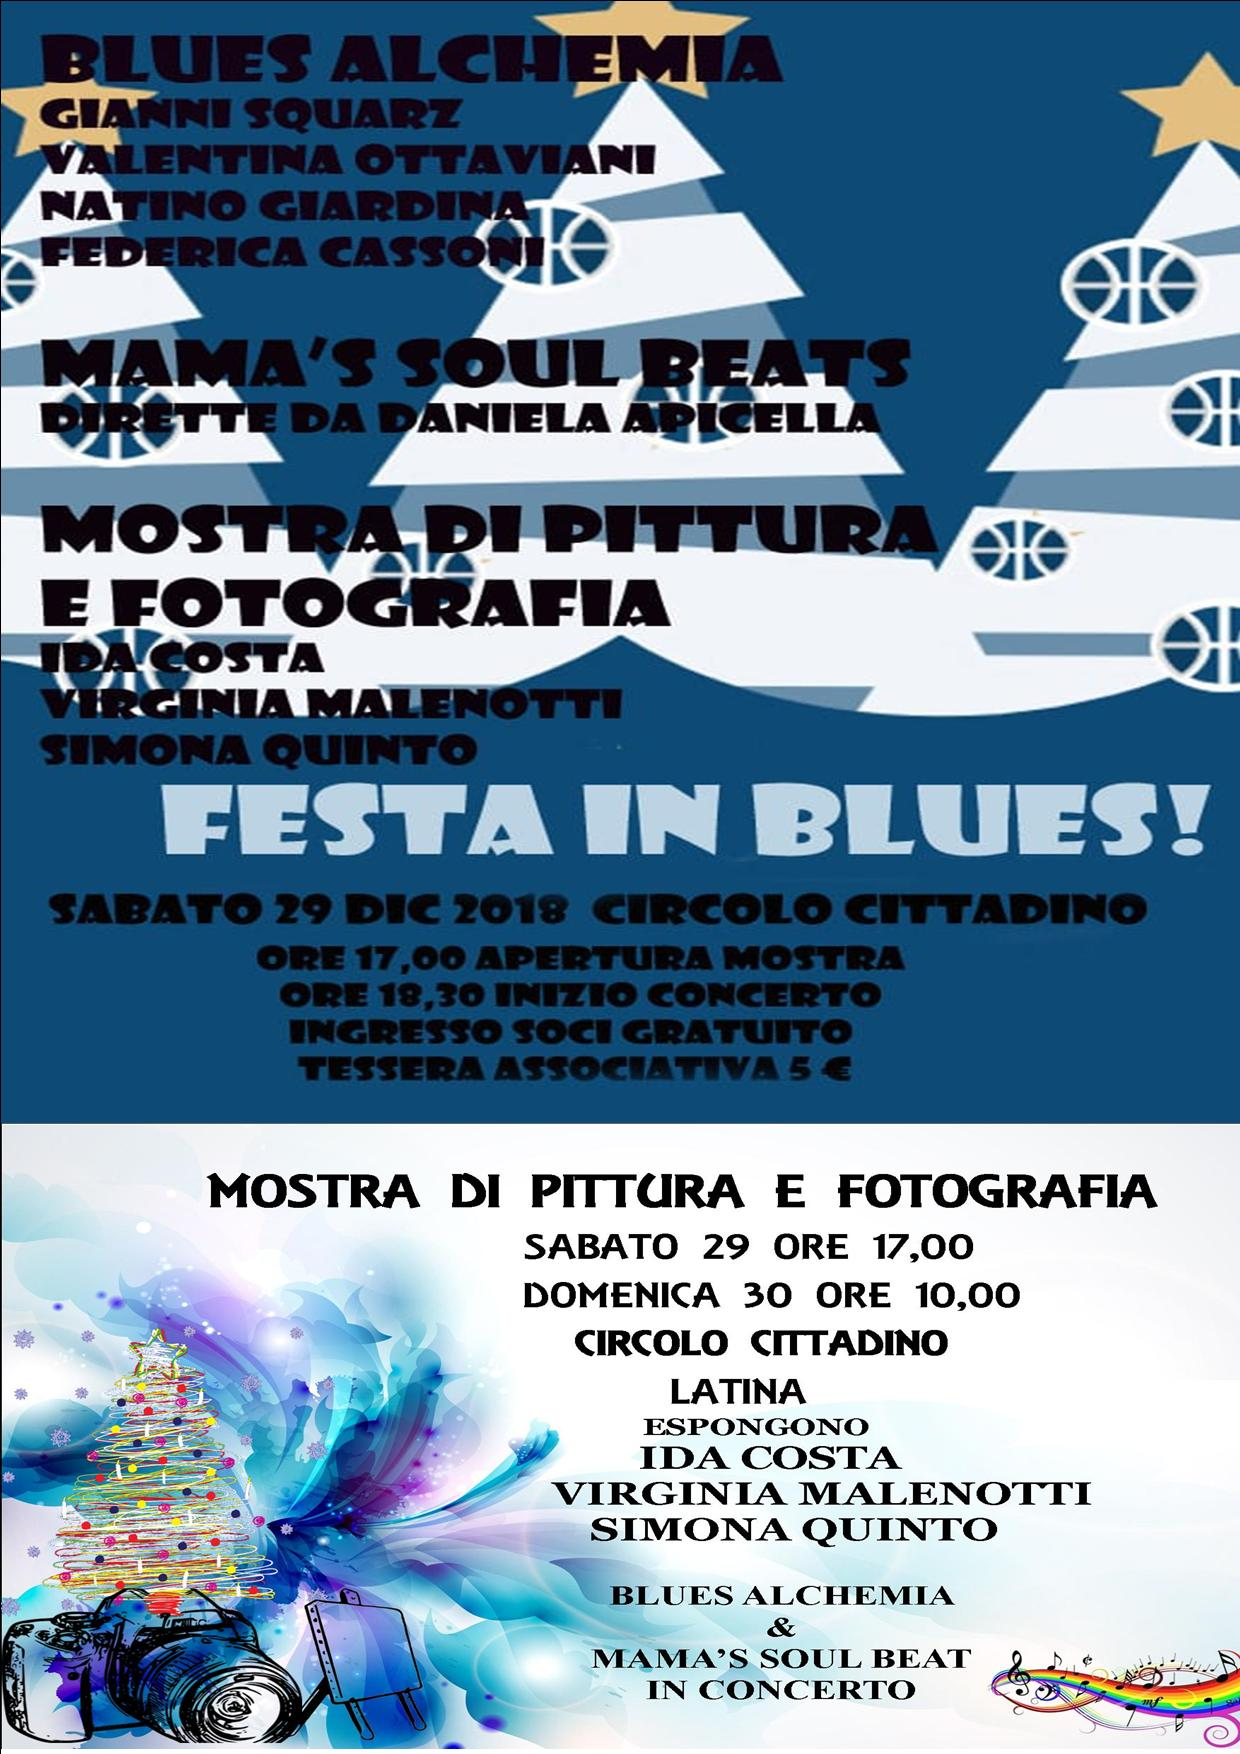 The Blues Alchemia, 29 dicembre ore 18.30